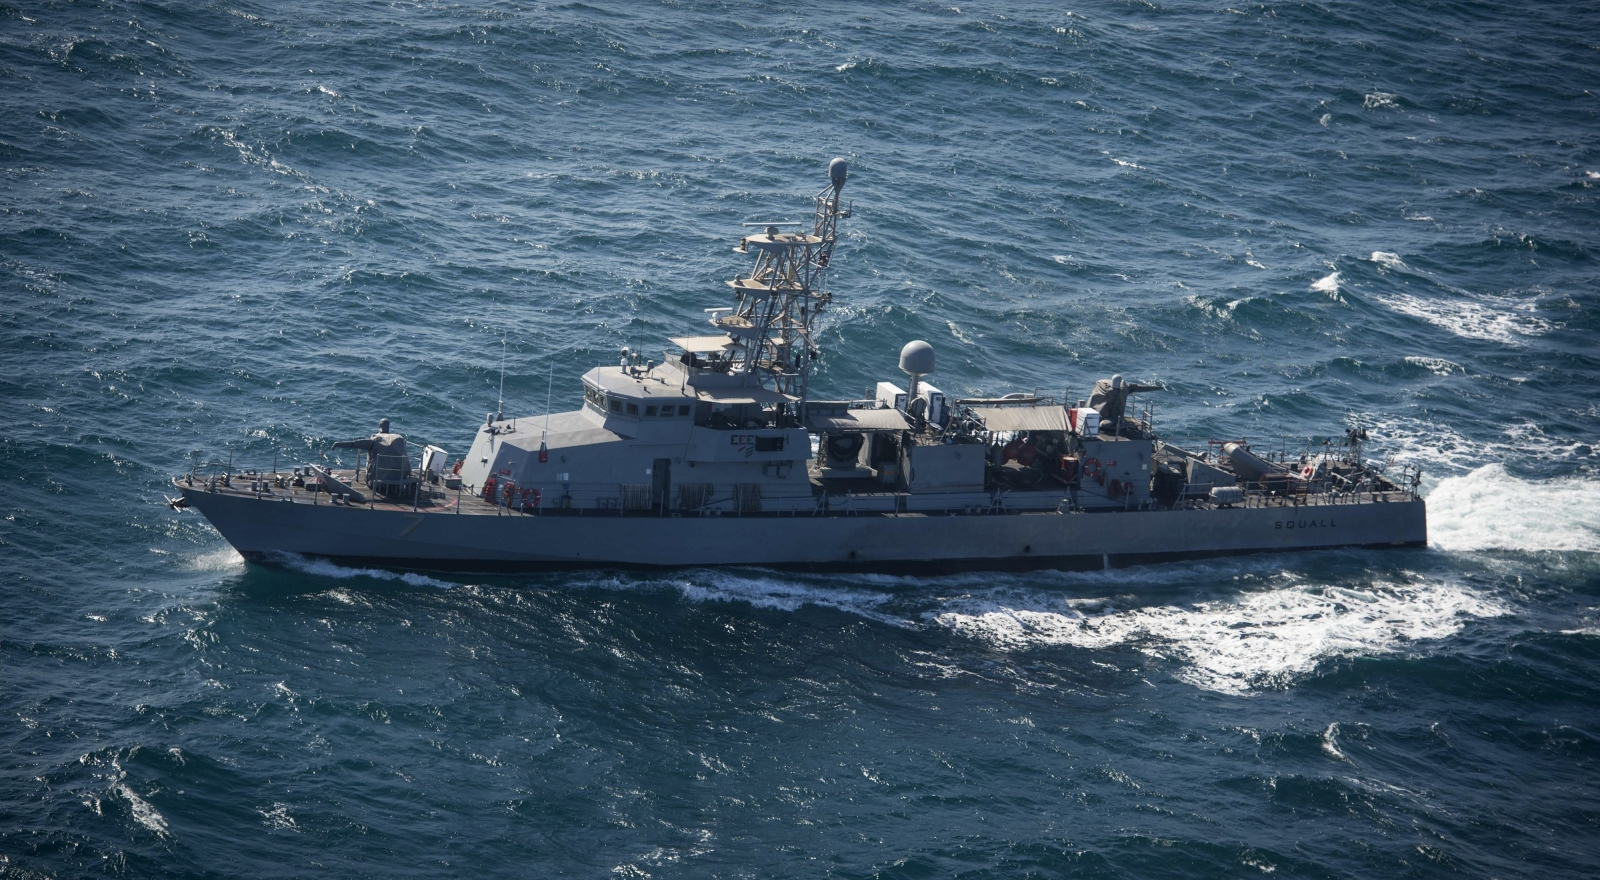 Iranian Islamic Revolutionary Guard boats taunt United States warship - because they can